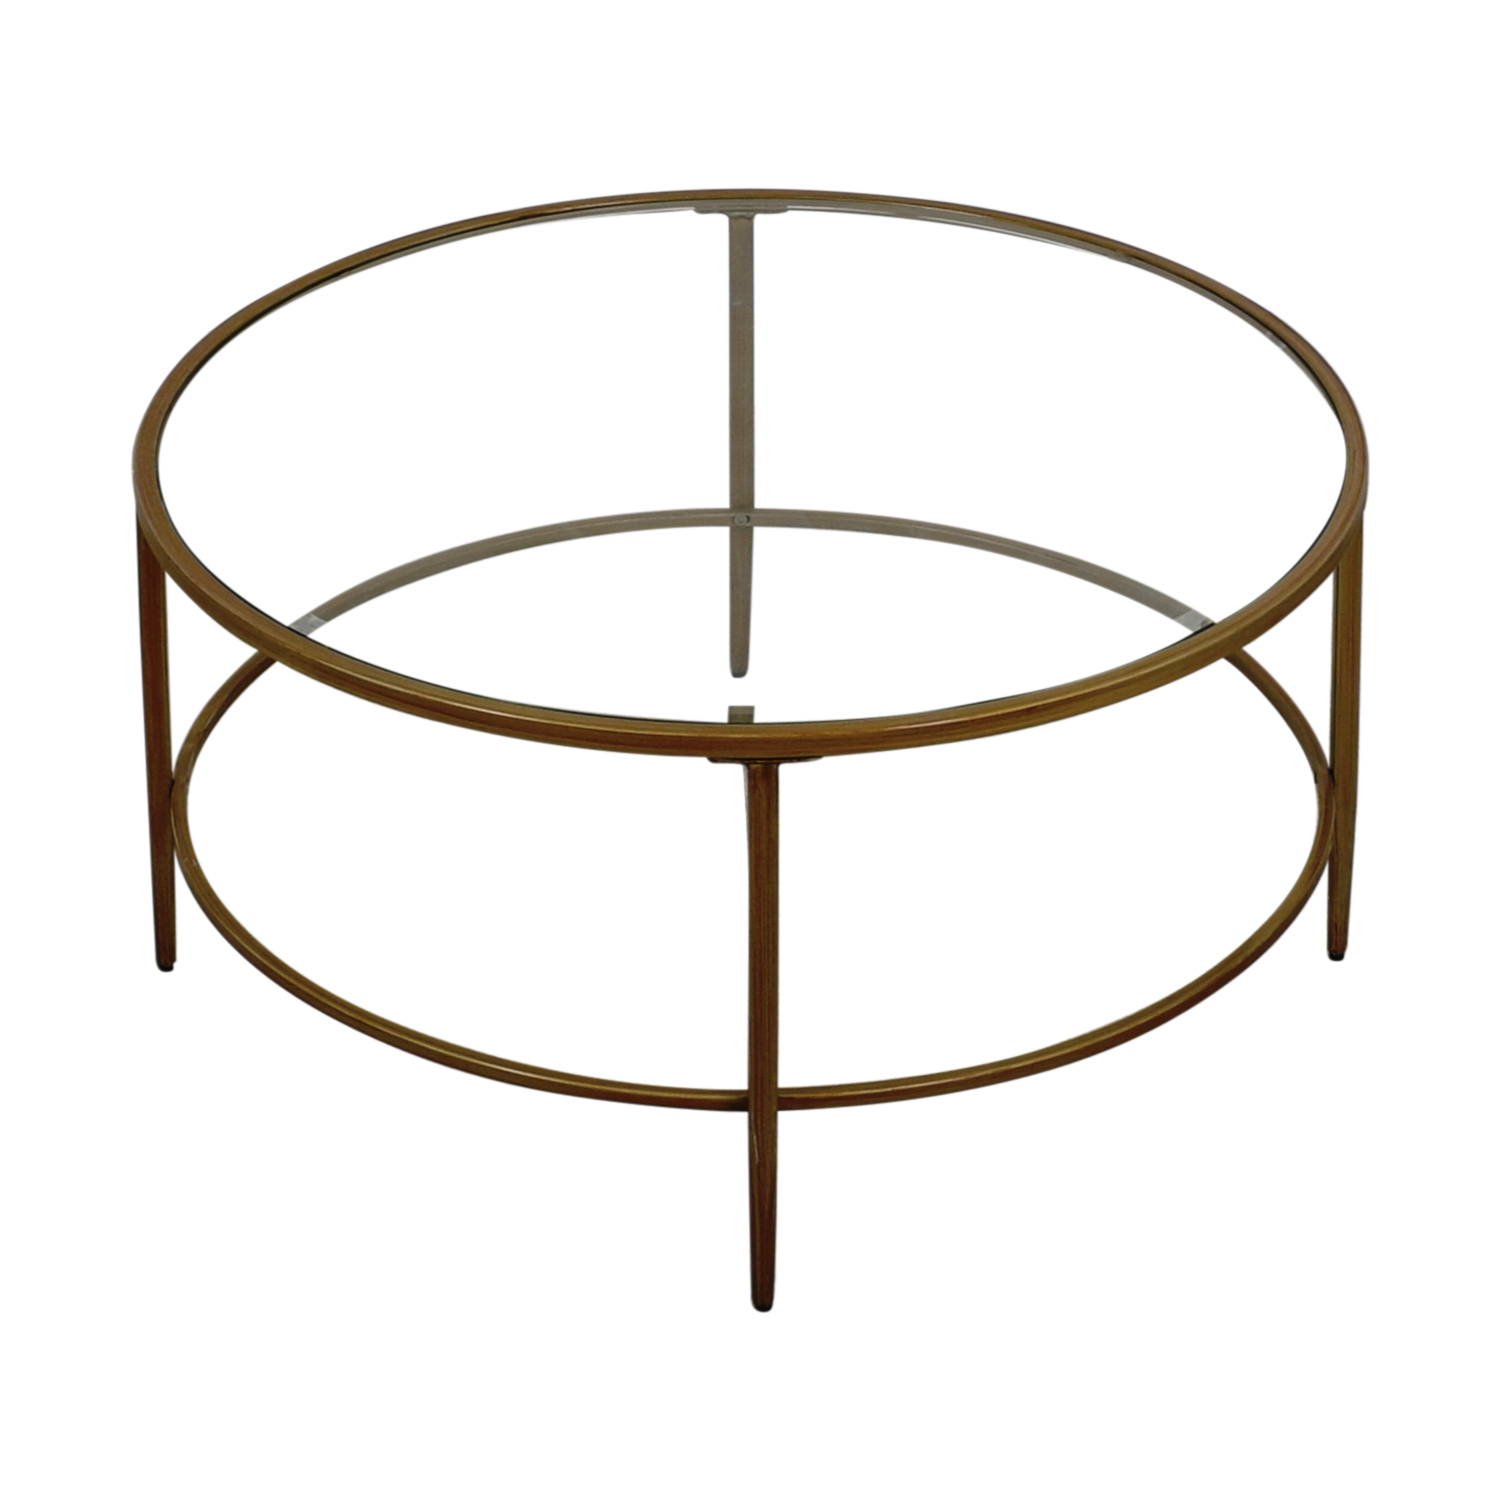 buy Birch Lane Round Glass Coffee table Birch Lane Tables